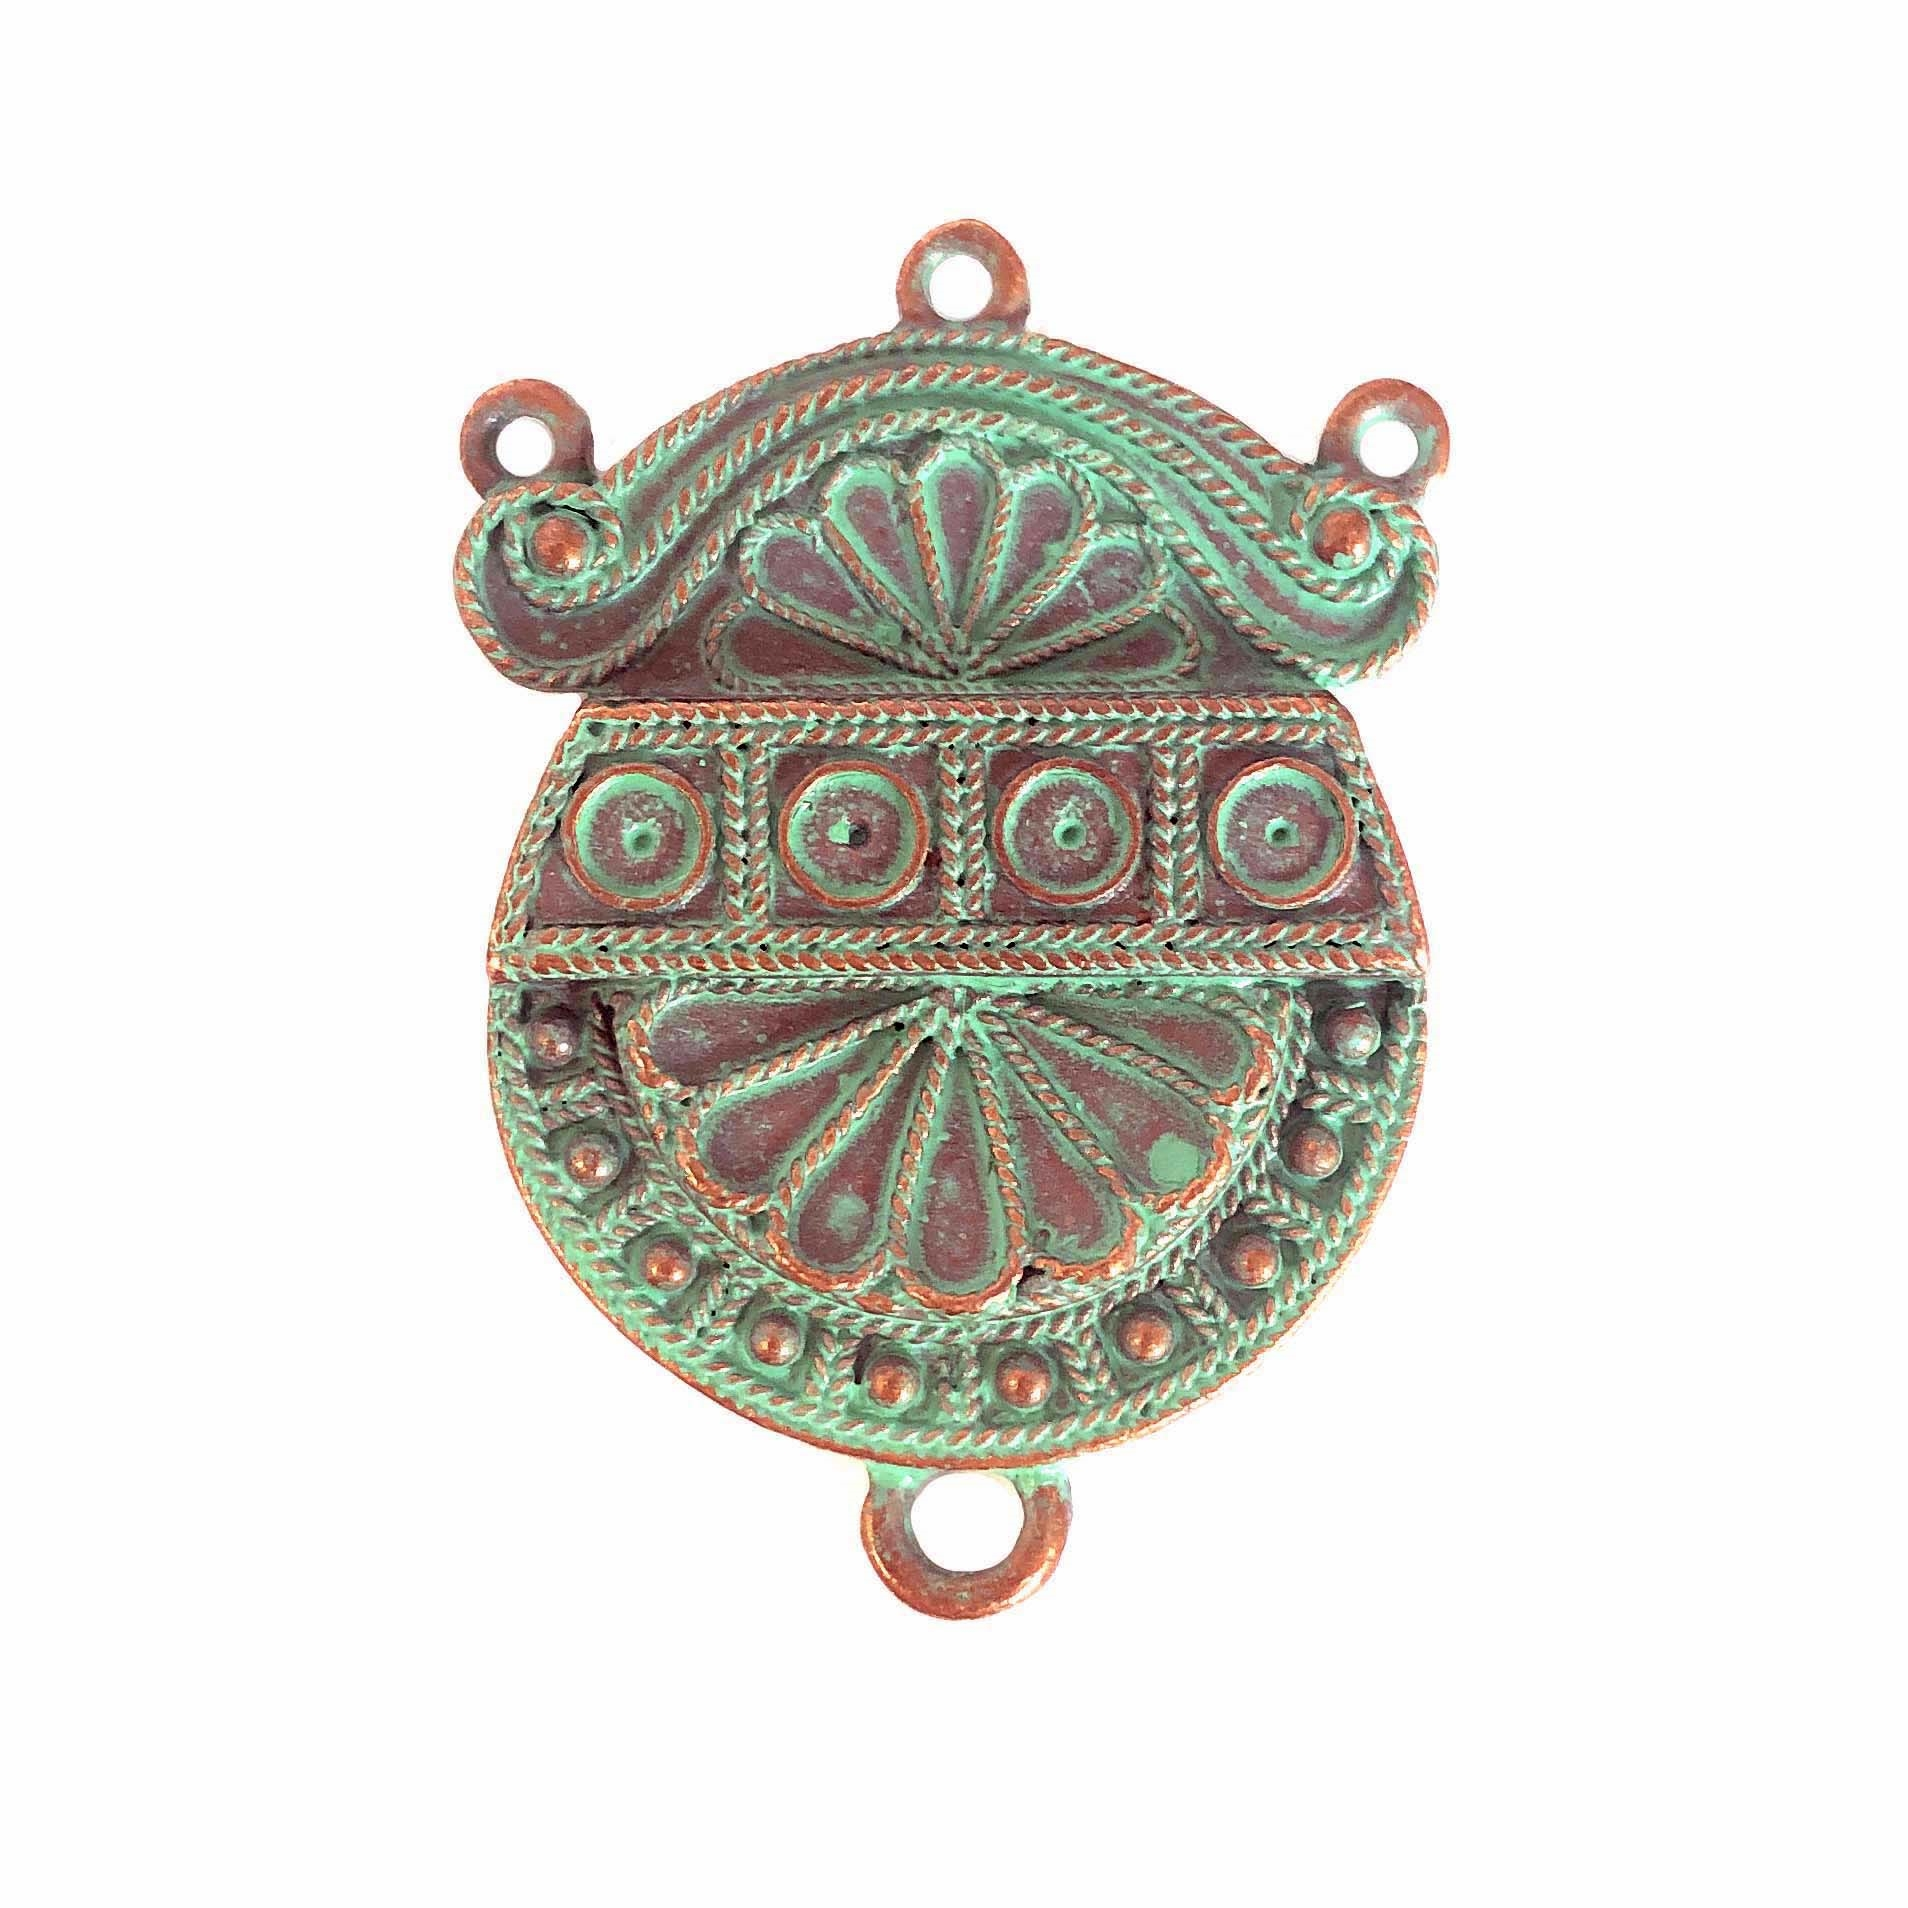 victorian centerpiece pendant, weathered copper pewter, victorian pendant, lead free pewter, B'sue by 1928, mint green patina, vintage jewelry parts, nickel free, us made, 1928 Company, designer jewelry, B'sue Boutiques, 34x26mm, 0326